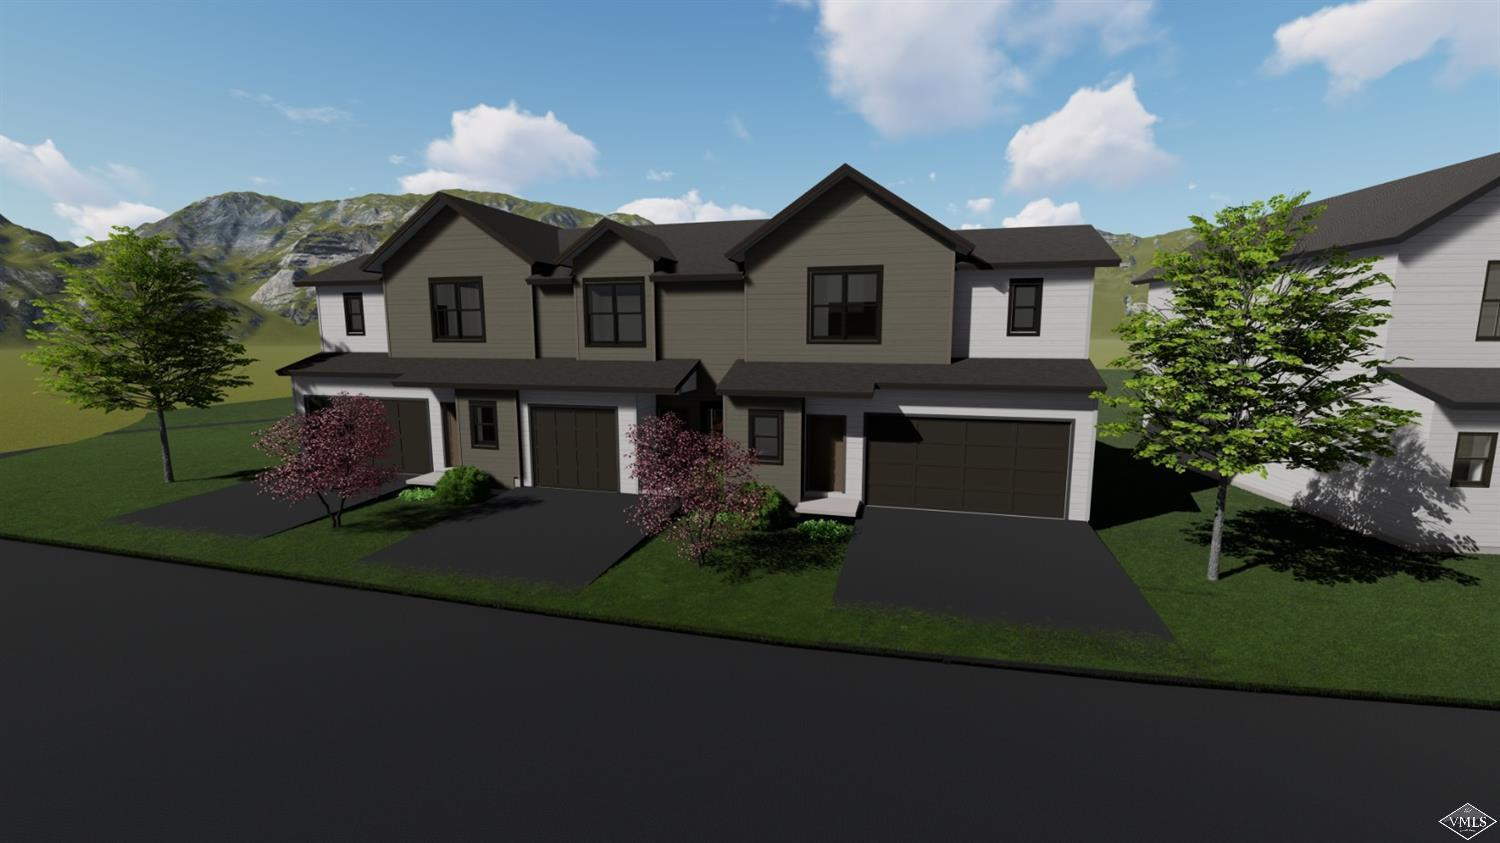 BRAND NEW TOWNHOME! Now under construction. Well-designed, site-built, 3 bedroom, 2.5 bath home with an attached 2-car garage. Incredibly convenient location close to Costco, Bus Route, Gypsum Rec Ctr, and Eagle County Airport. Only minutes to world-class recreation of all types. Standard finishes include vaulted ceilings, LVT flooring, laminate countertops, kitchen pantry, & Whirlpool appliances. Upgrades are available as well! Laundry room conveniently located on the bedroom level.